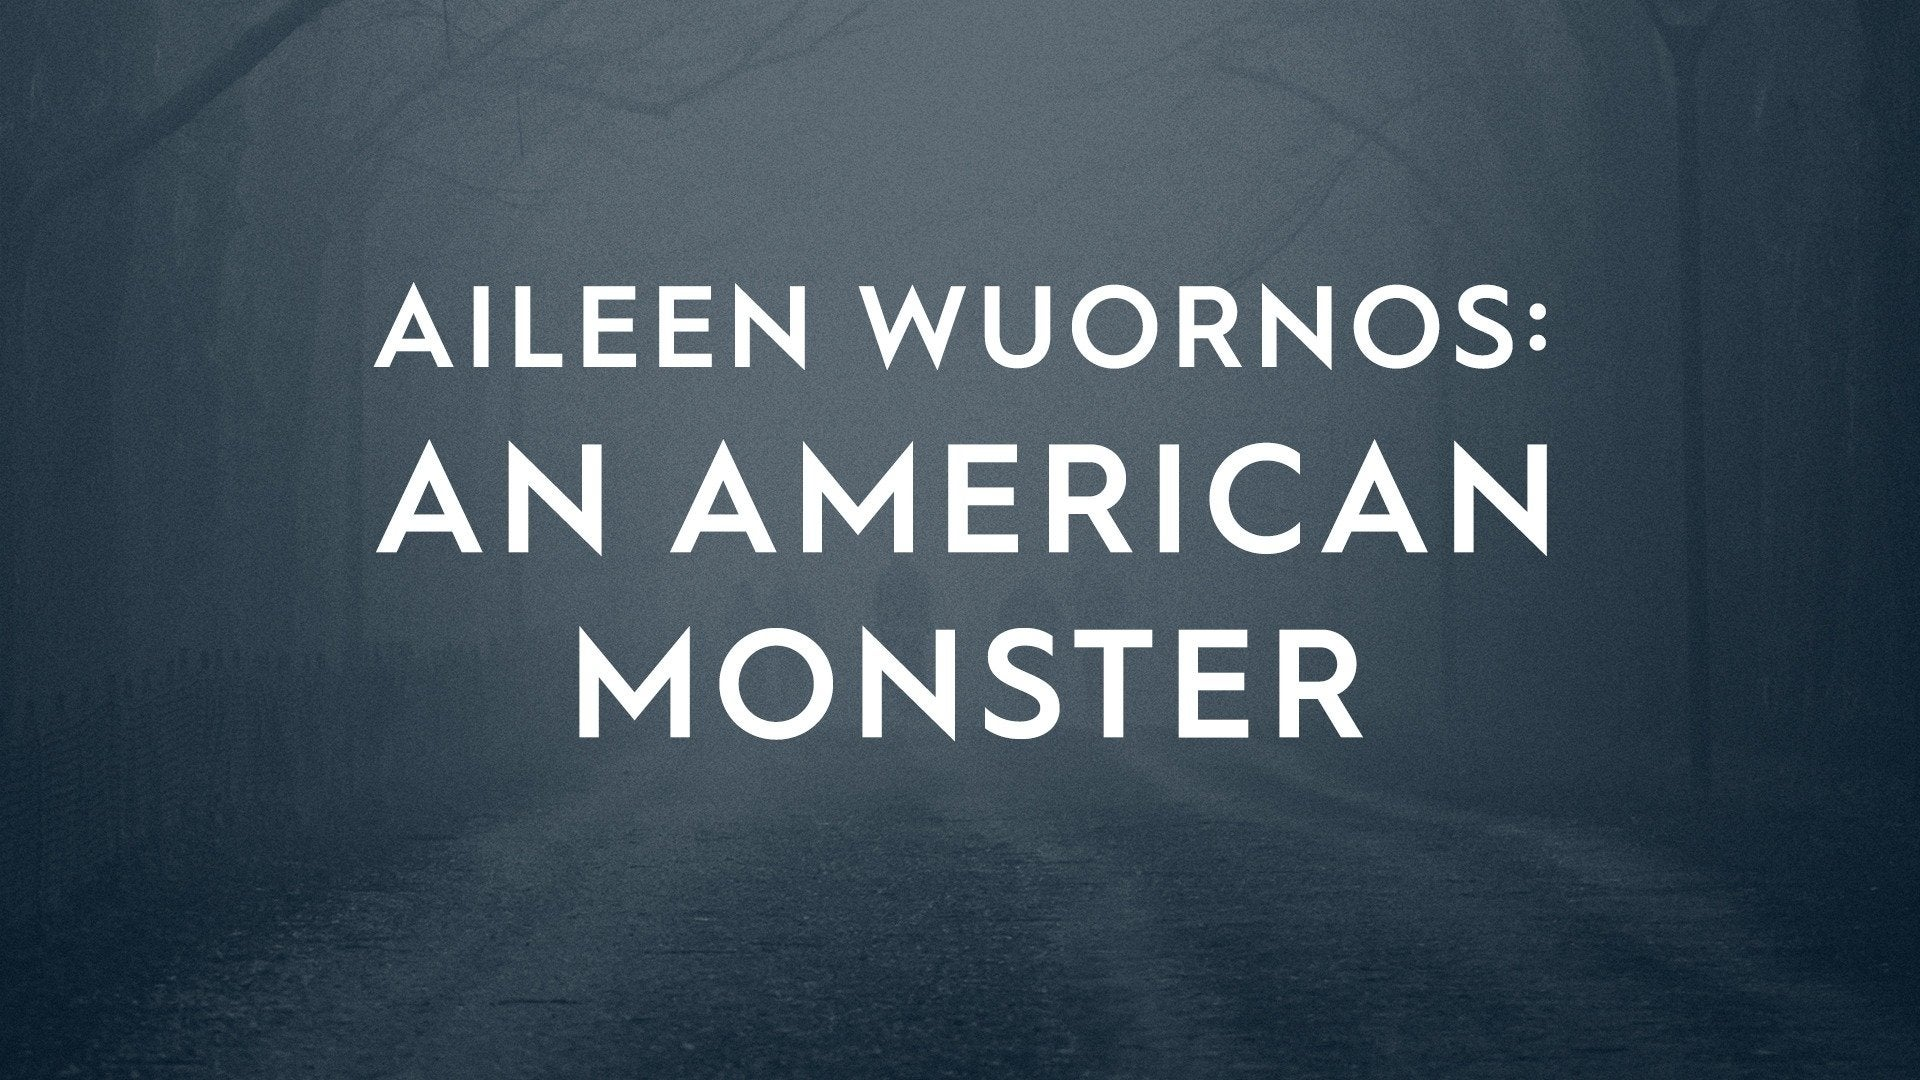 Aileen Wuornos: An American Monster